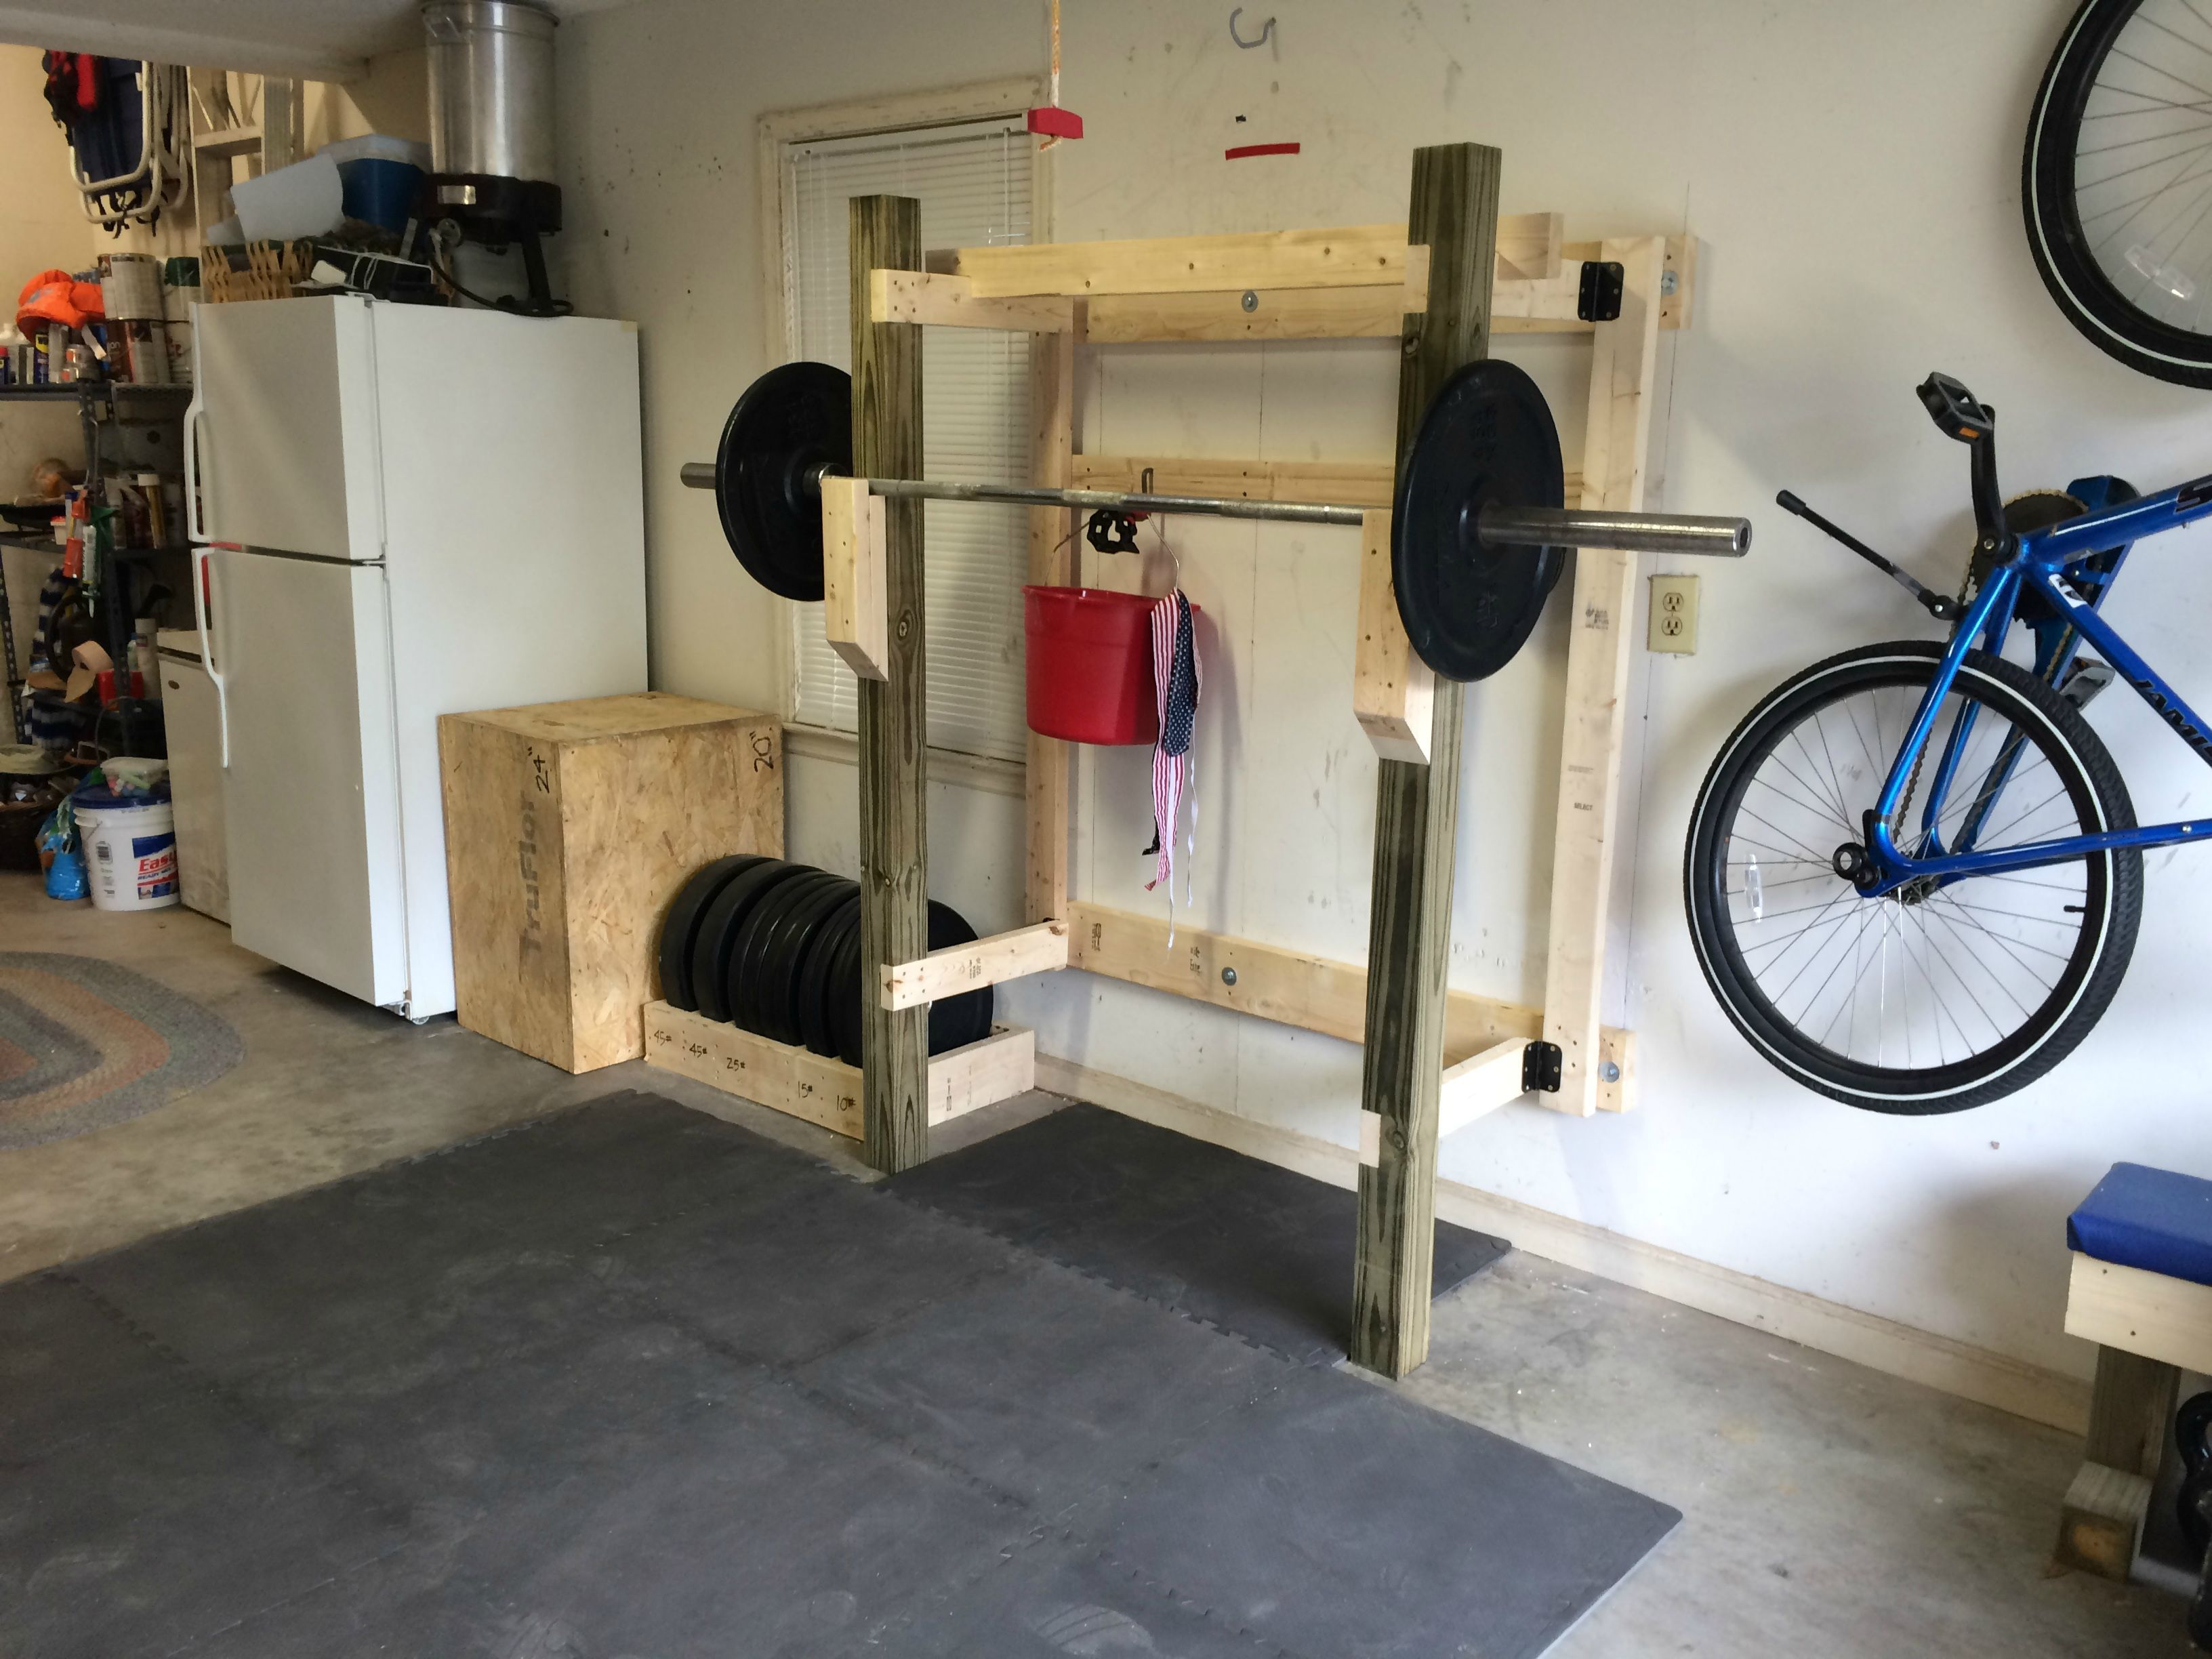 Diy Folding Squat Rack Diy Home Gym Squat Rack Diy Garage Gym Diy